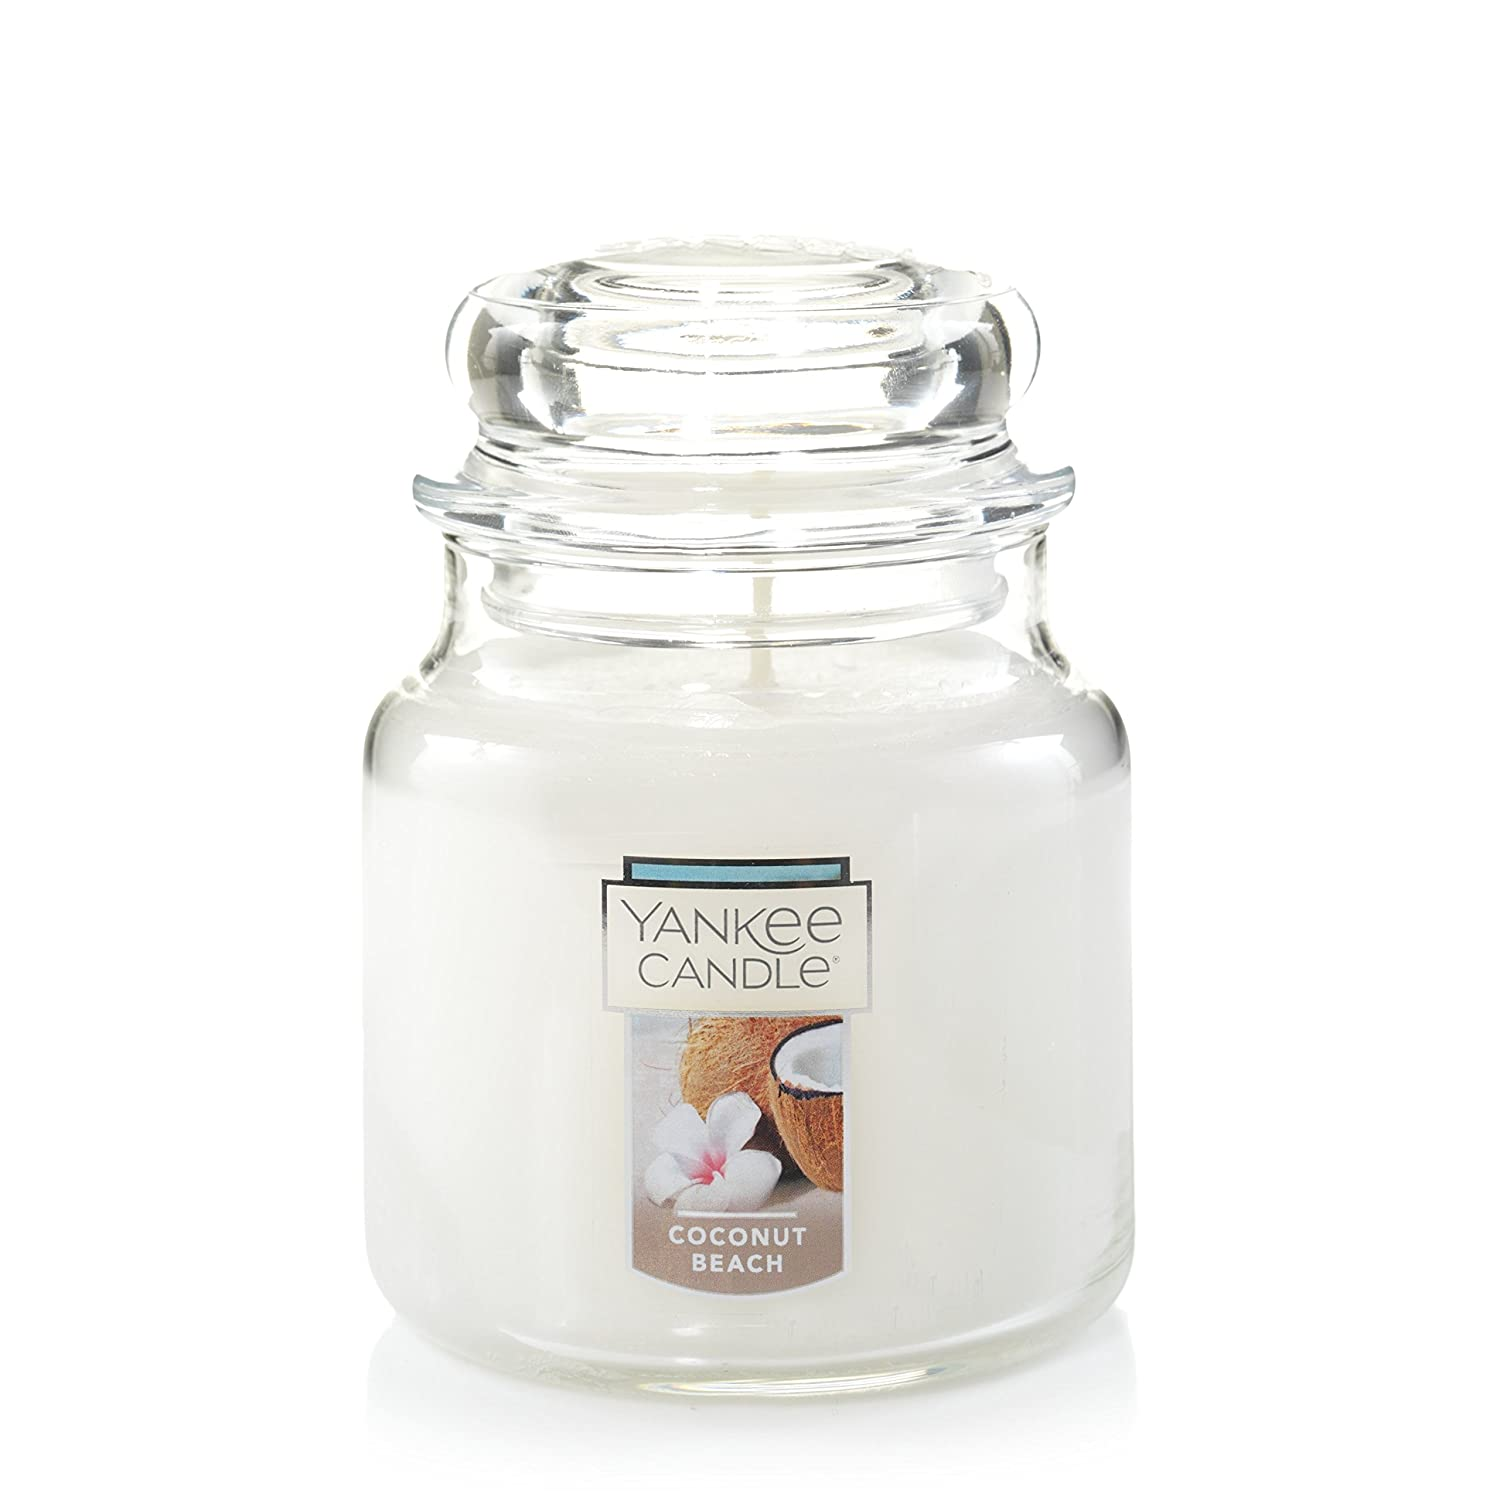 Yankee Candle Medium 2-Wick Tumbler Candle, Coconut Beach Yankee Candle Company 1523484Z